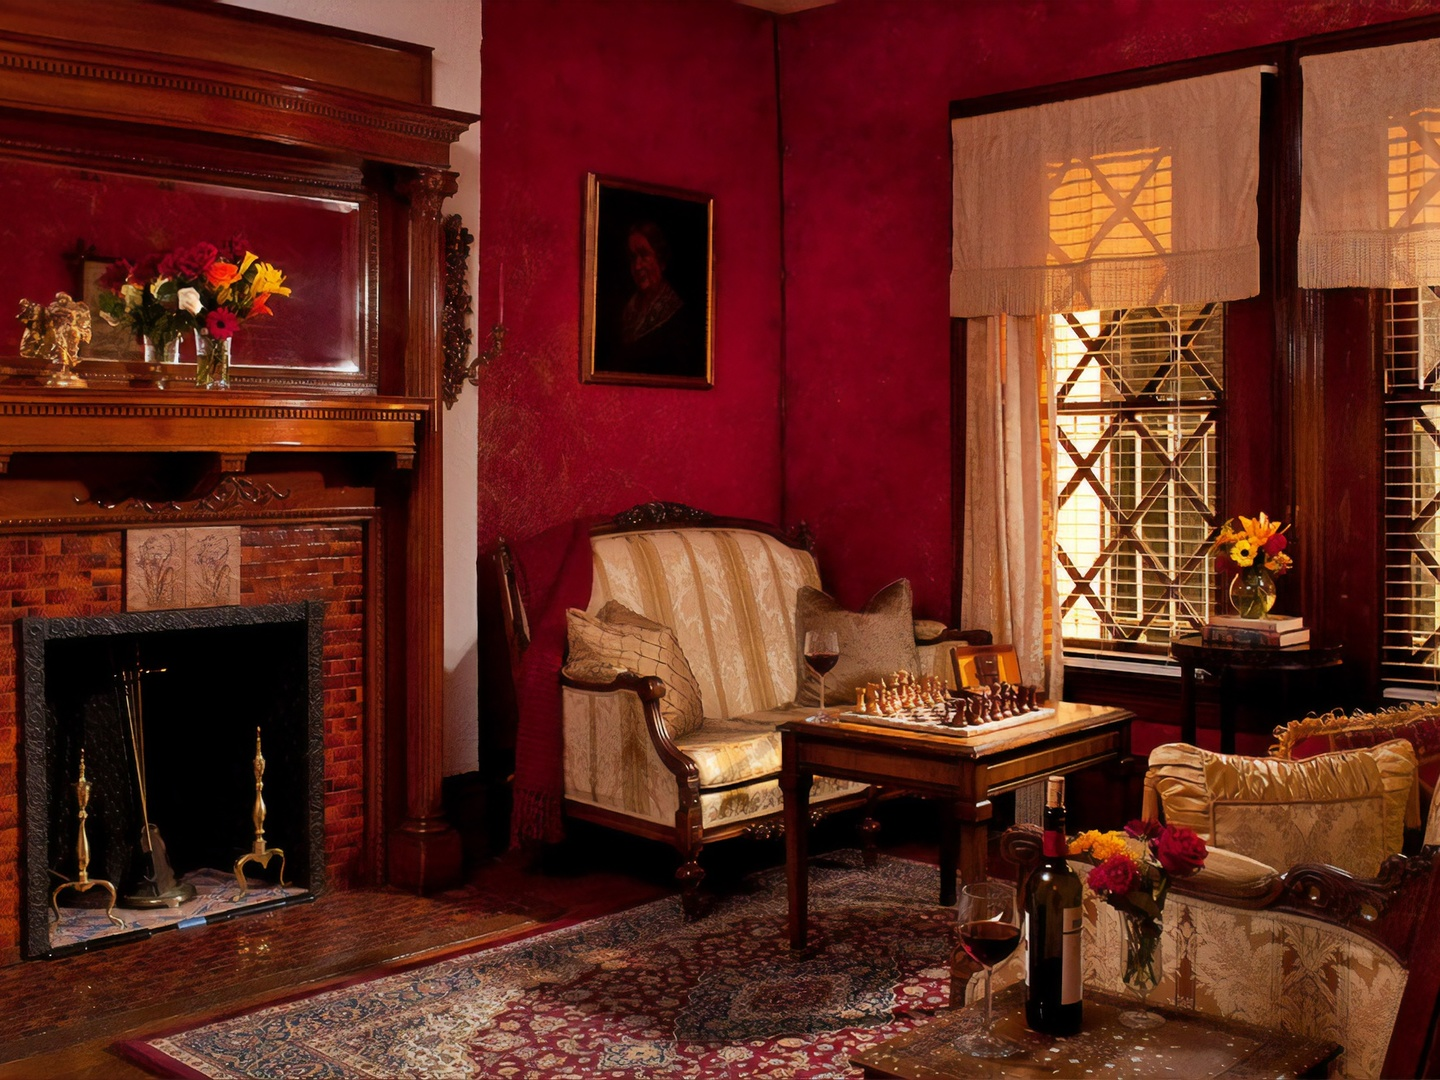 A fireplace in a living room filled with furniture and a fire place at American Guest House.